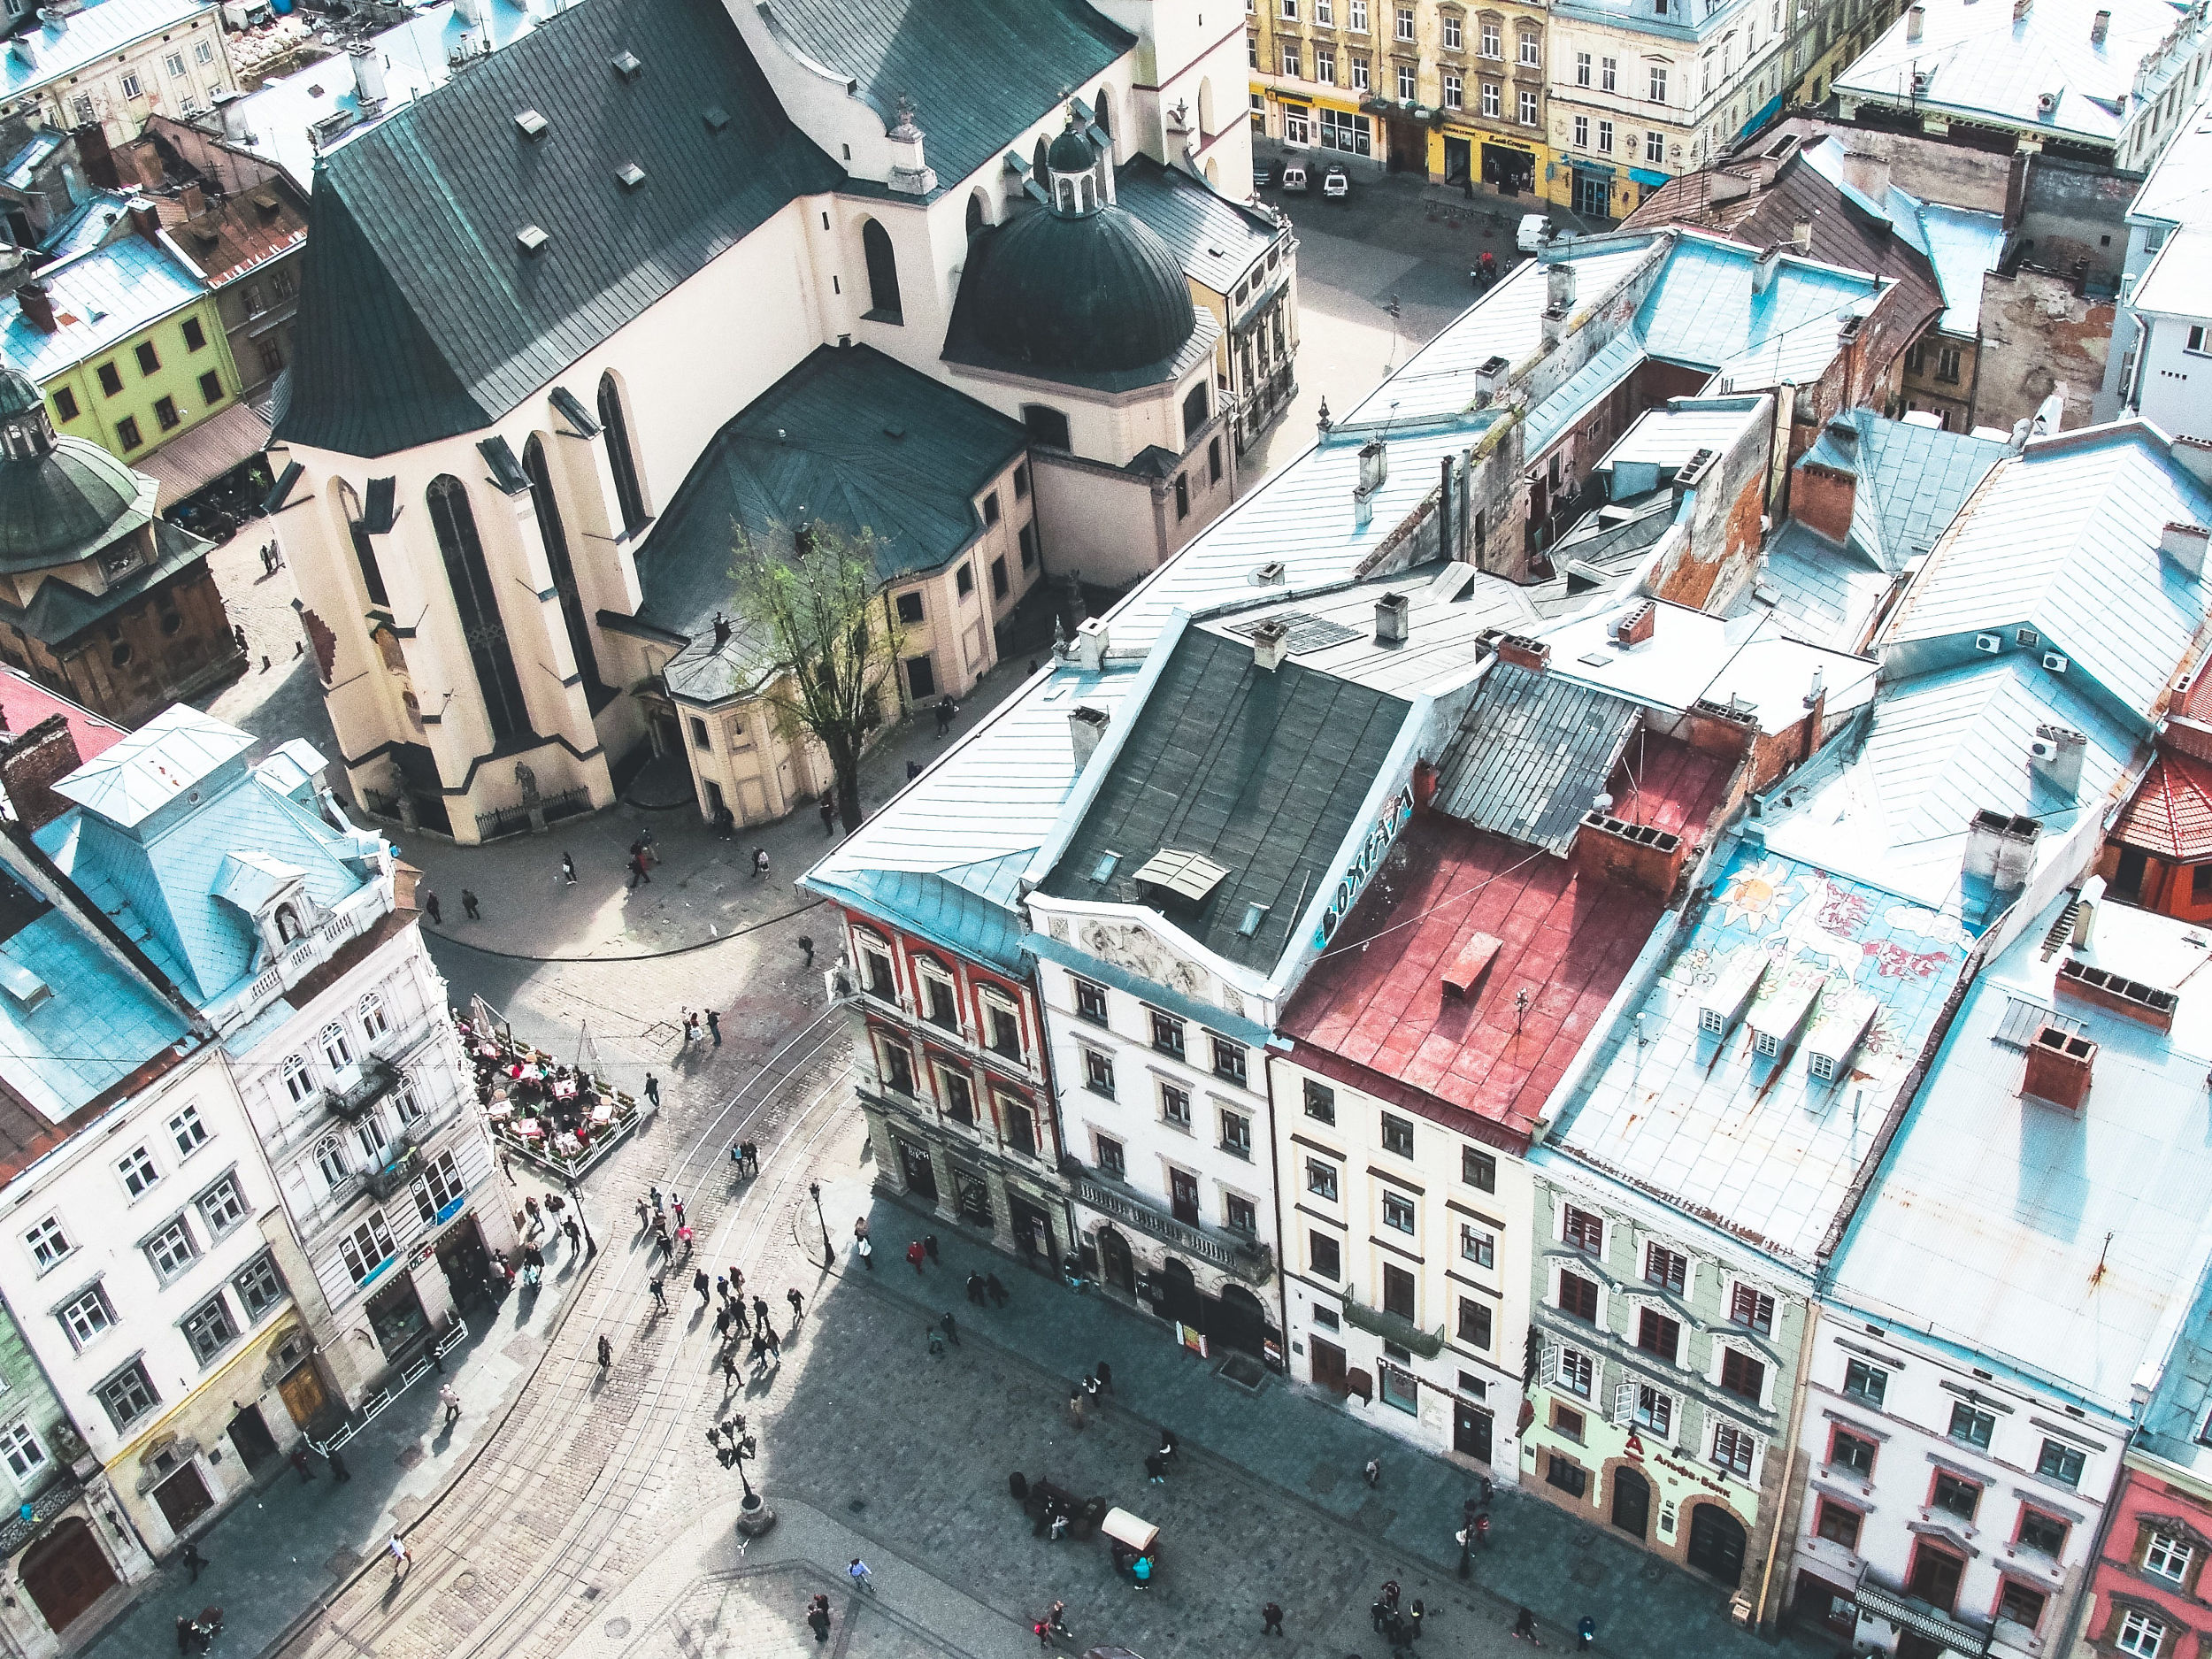 Lviv, Ukraine (Photo: John-Mark Kuznietsov)